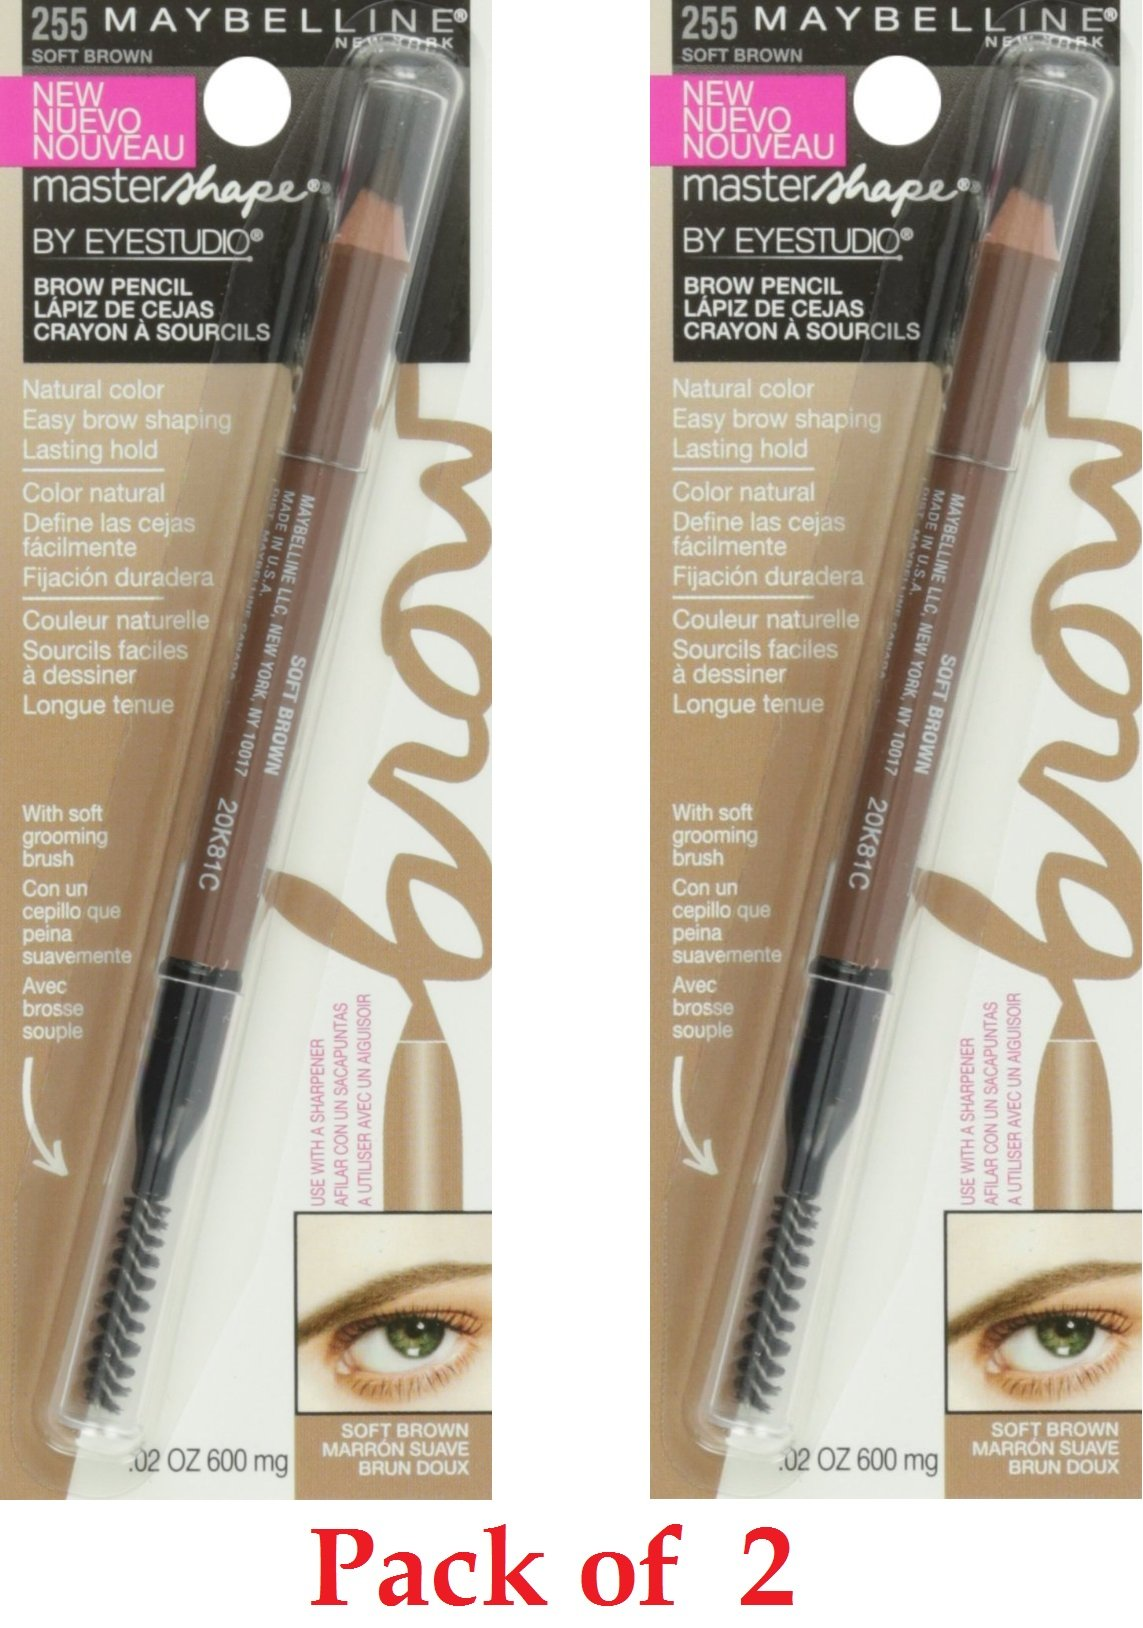 Maybelline New York Eye Studio Master Shape Brow Pencil, 255 Soft Brown, 0.02 Fluid Ounce (Pack 2) by Maybelline New York